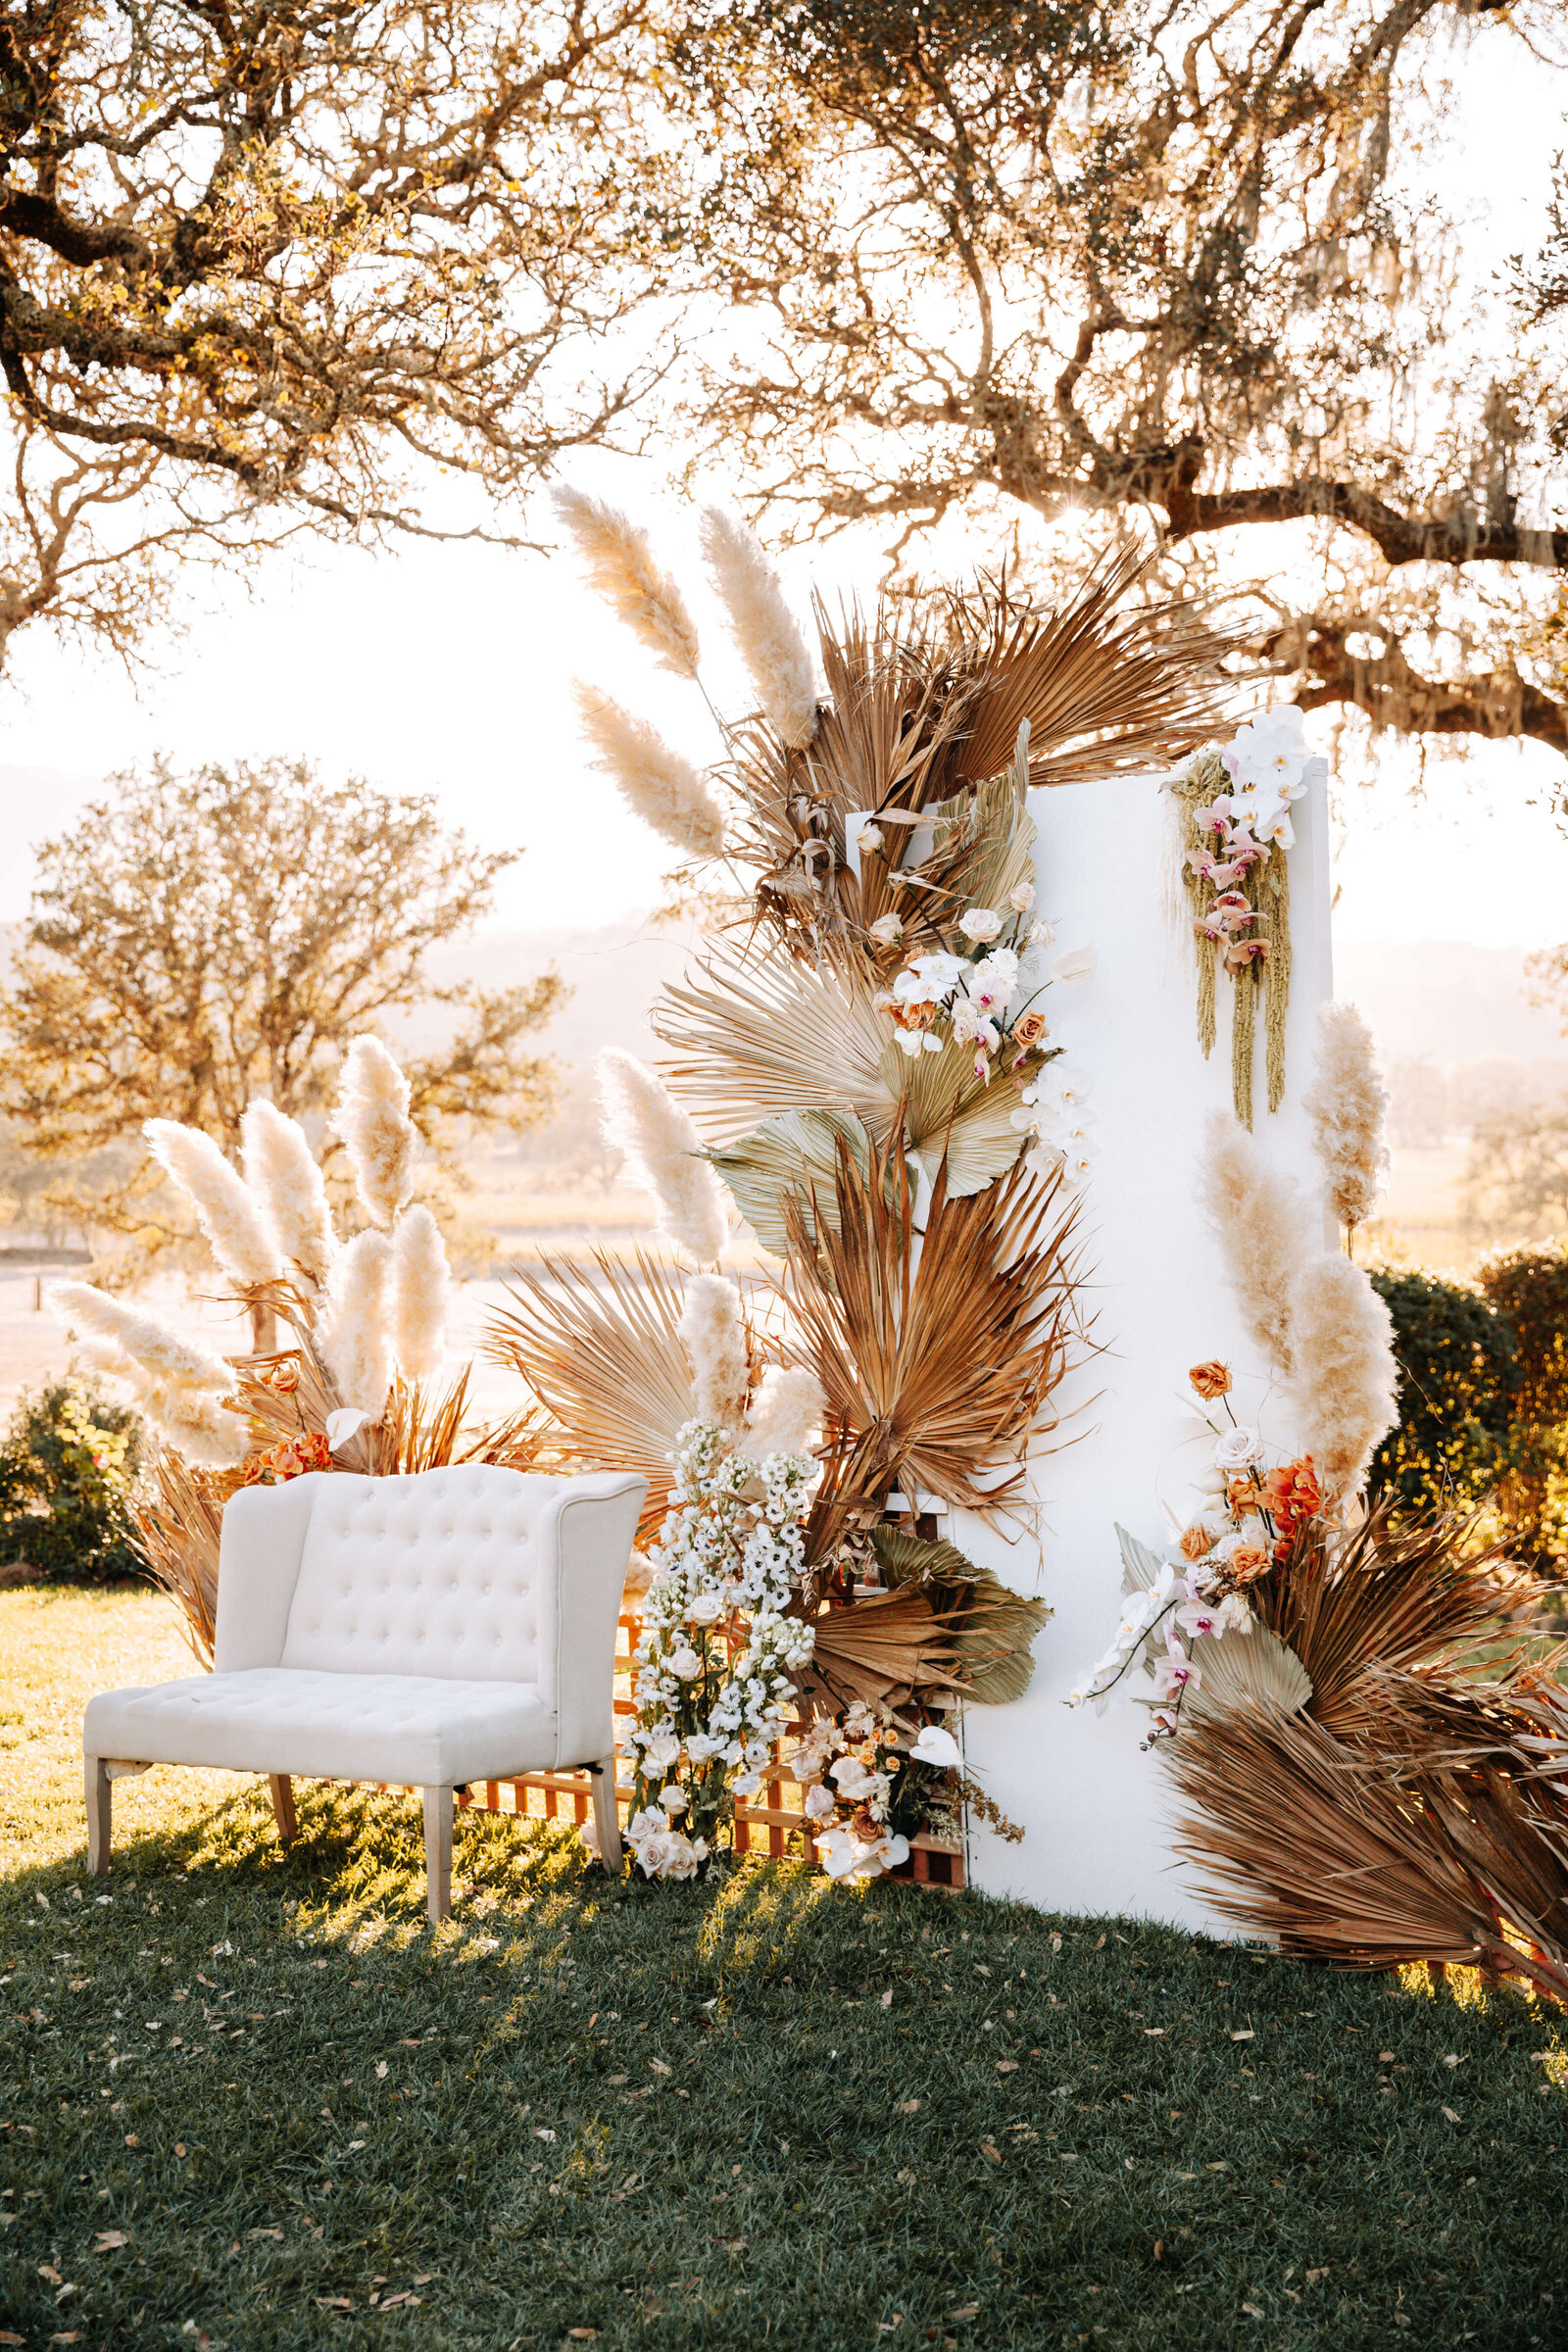 Sonoma-valley-beltane-ranch-california-wedding-events-by-gianna-somona-wedding-planner-11